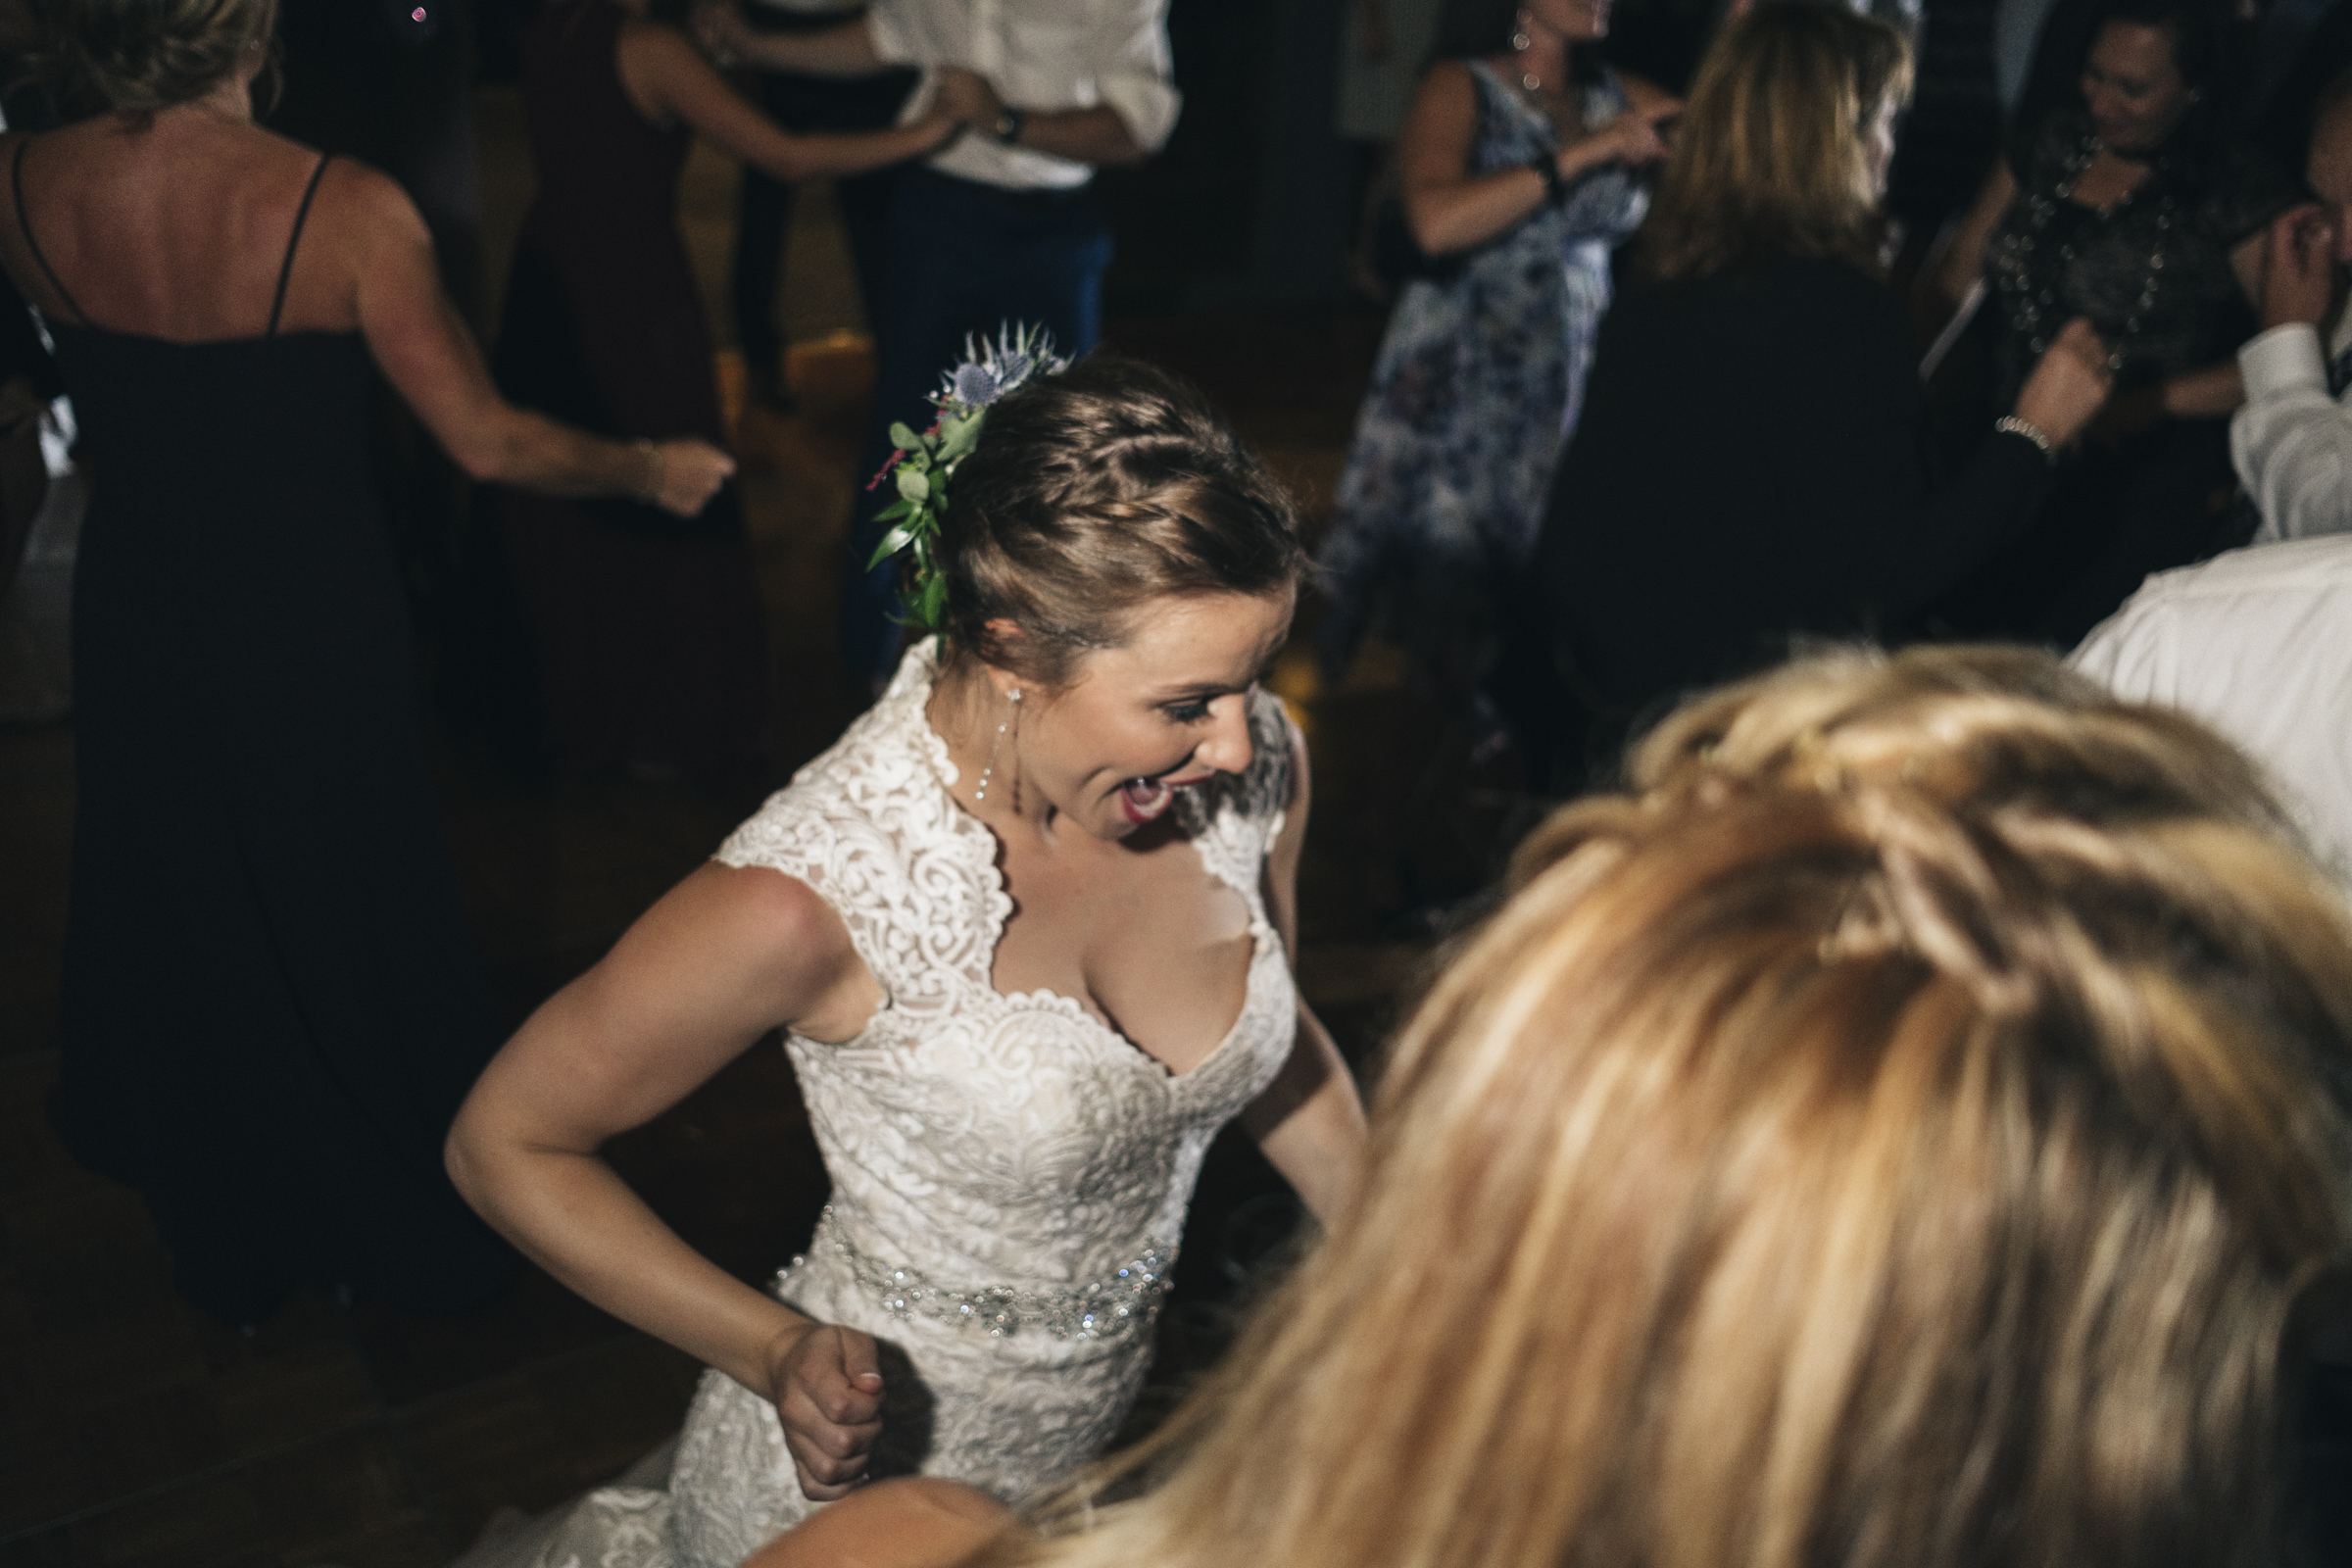 Bride dances at her wedding reception at Belmont Country Club